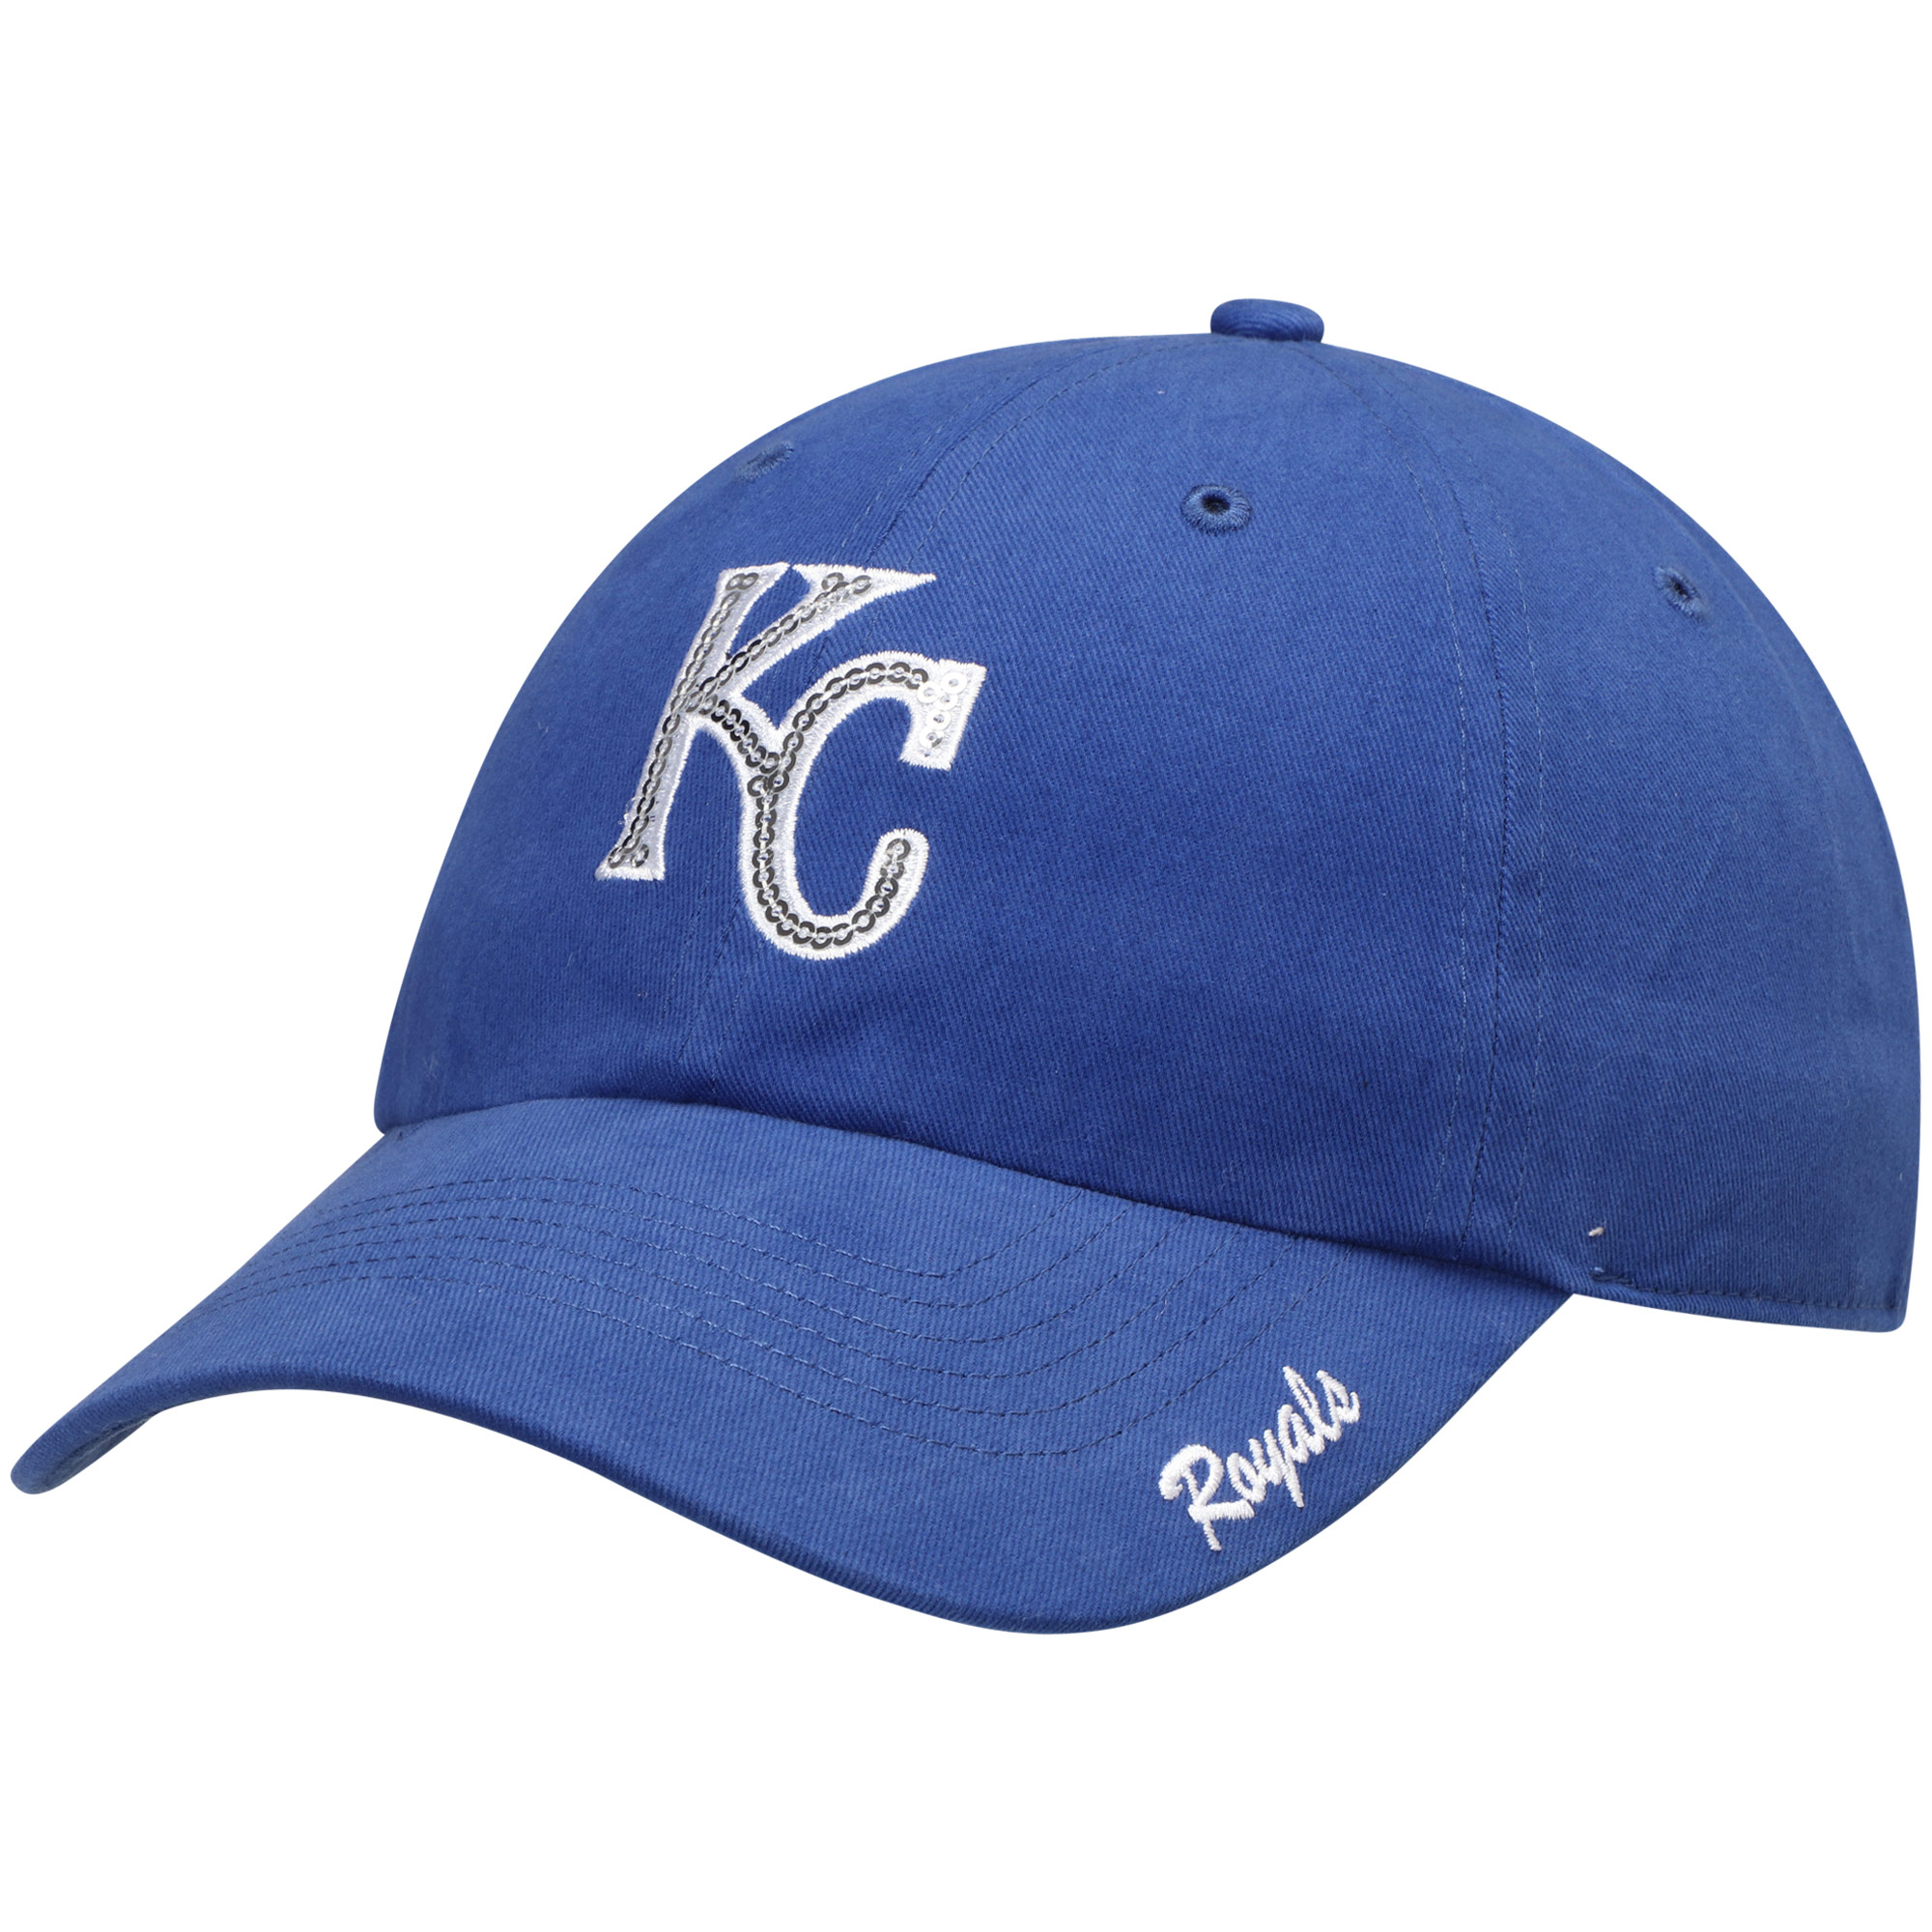 premium selection 4ba5a aa84a ... usa product image womens fan favorite royal kansas city royals sparkle  adjustable hat osfa 8dcad 0bd0b